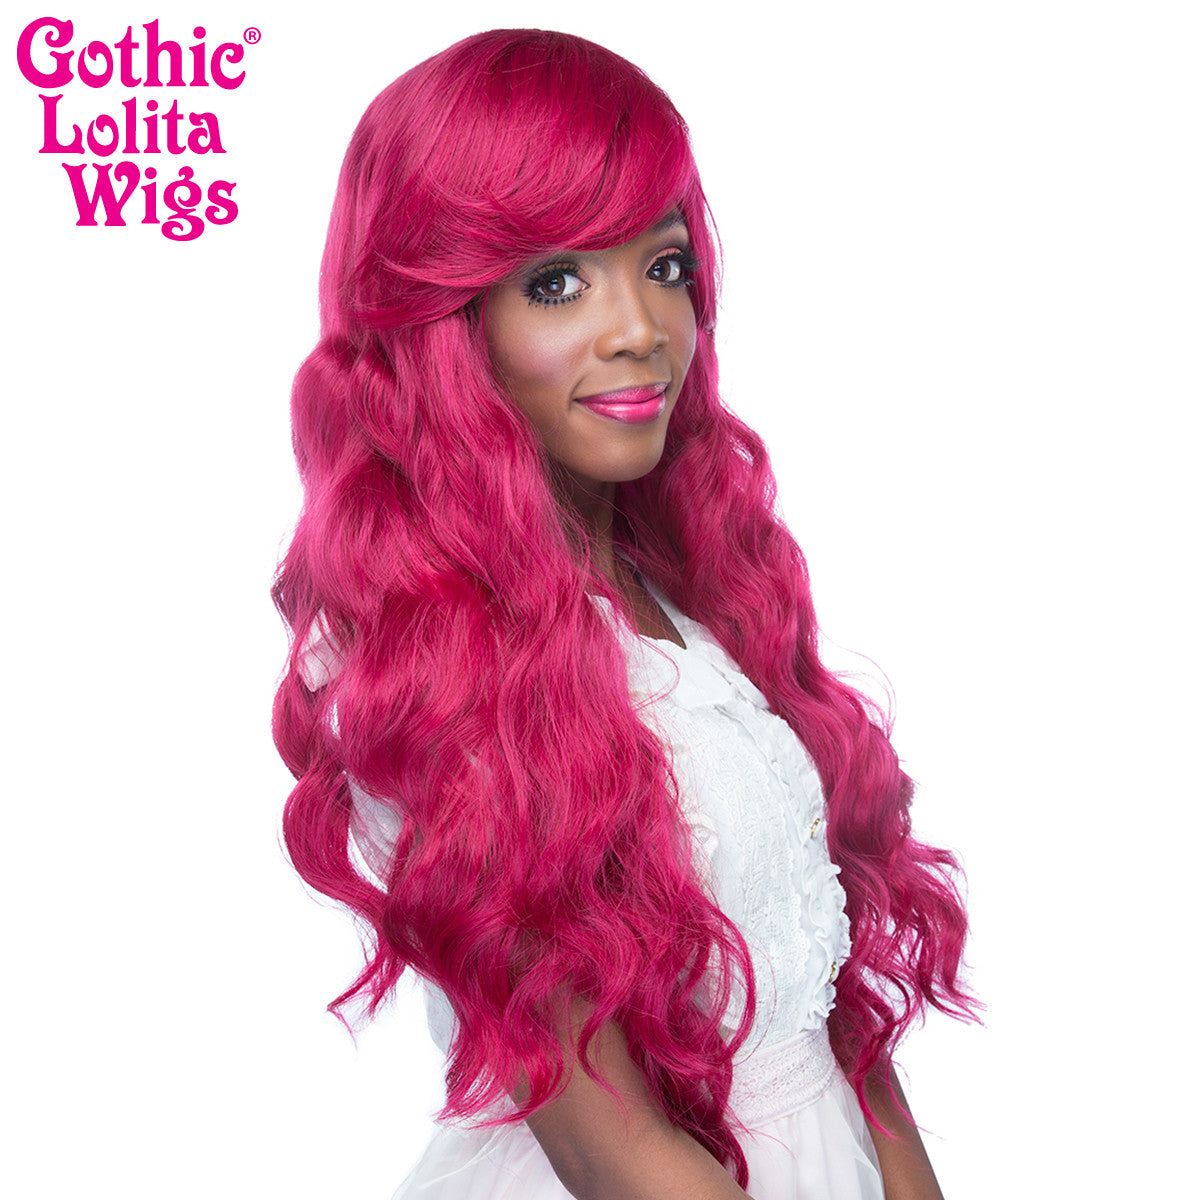 Gothic Lolita Wigs® <br> Classic Wavy Lolita™ Collection - Cranberry -00465